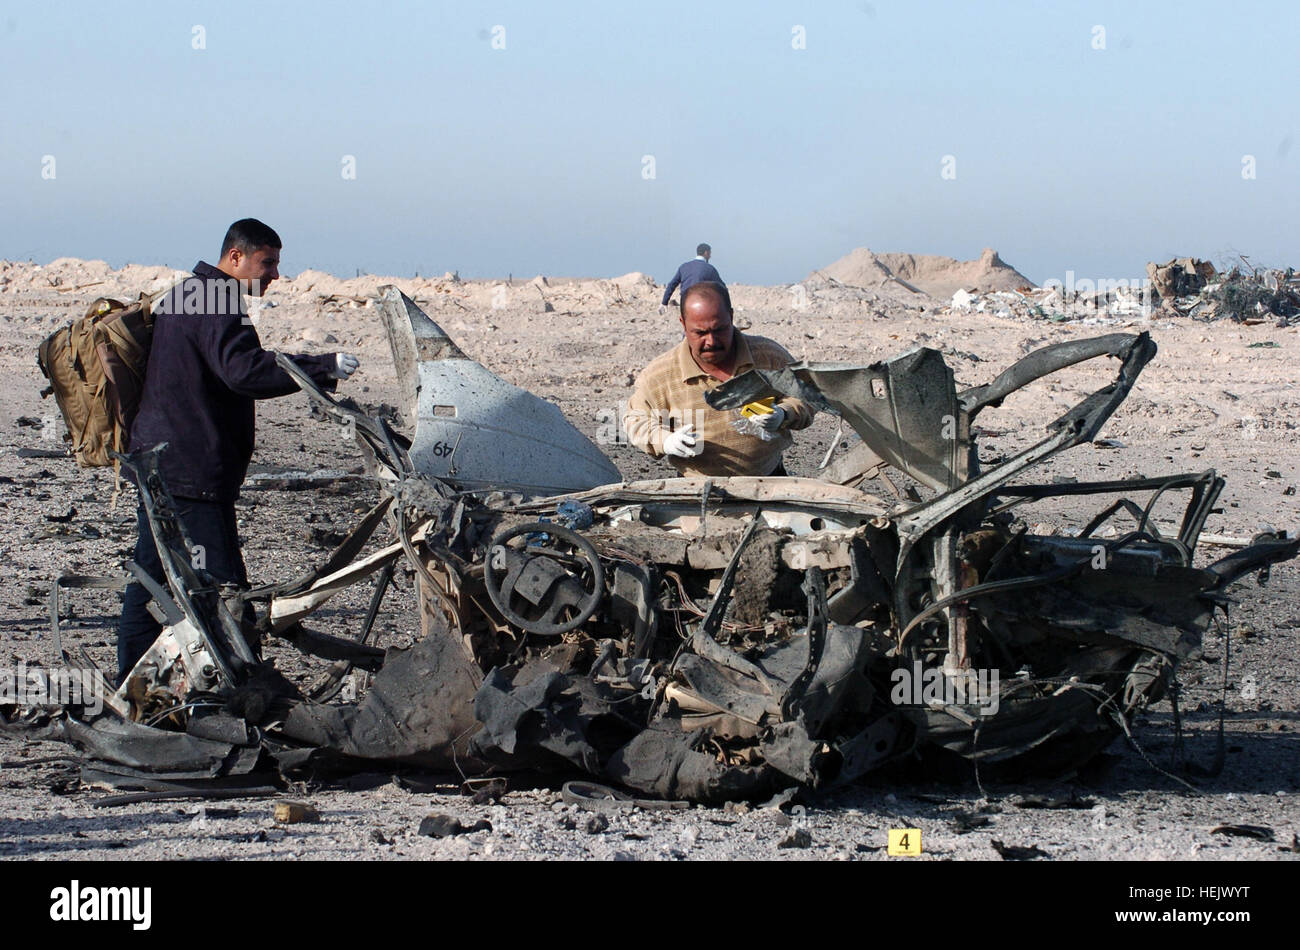 Iraqi law enforcers search for clues among and beyond an exploded car during a training session sponsored by the - Stock Image